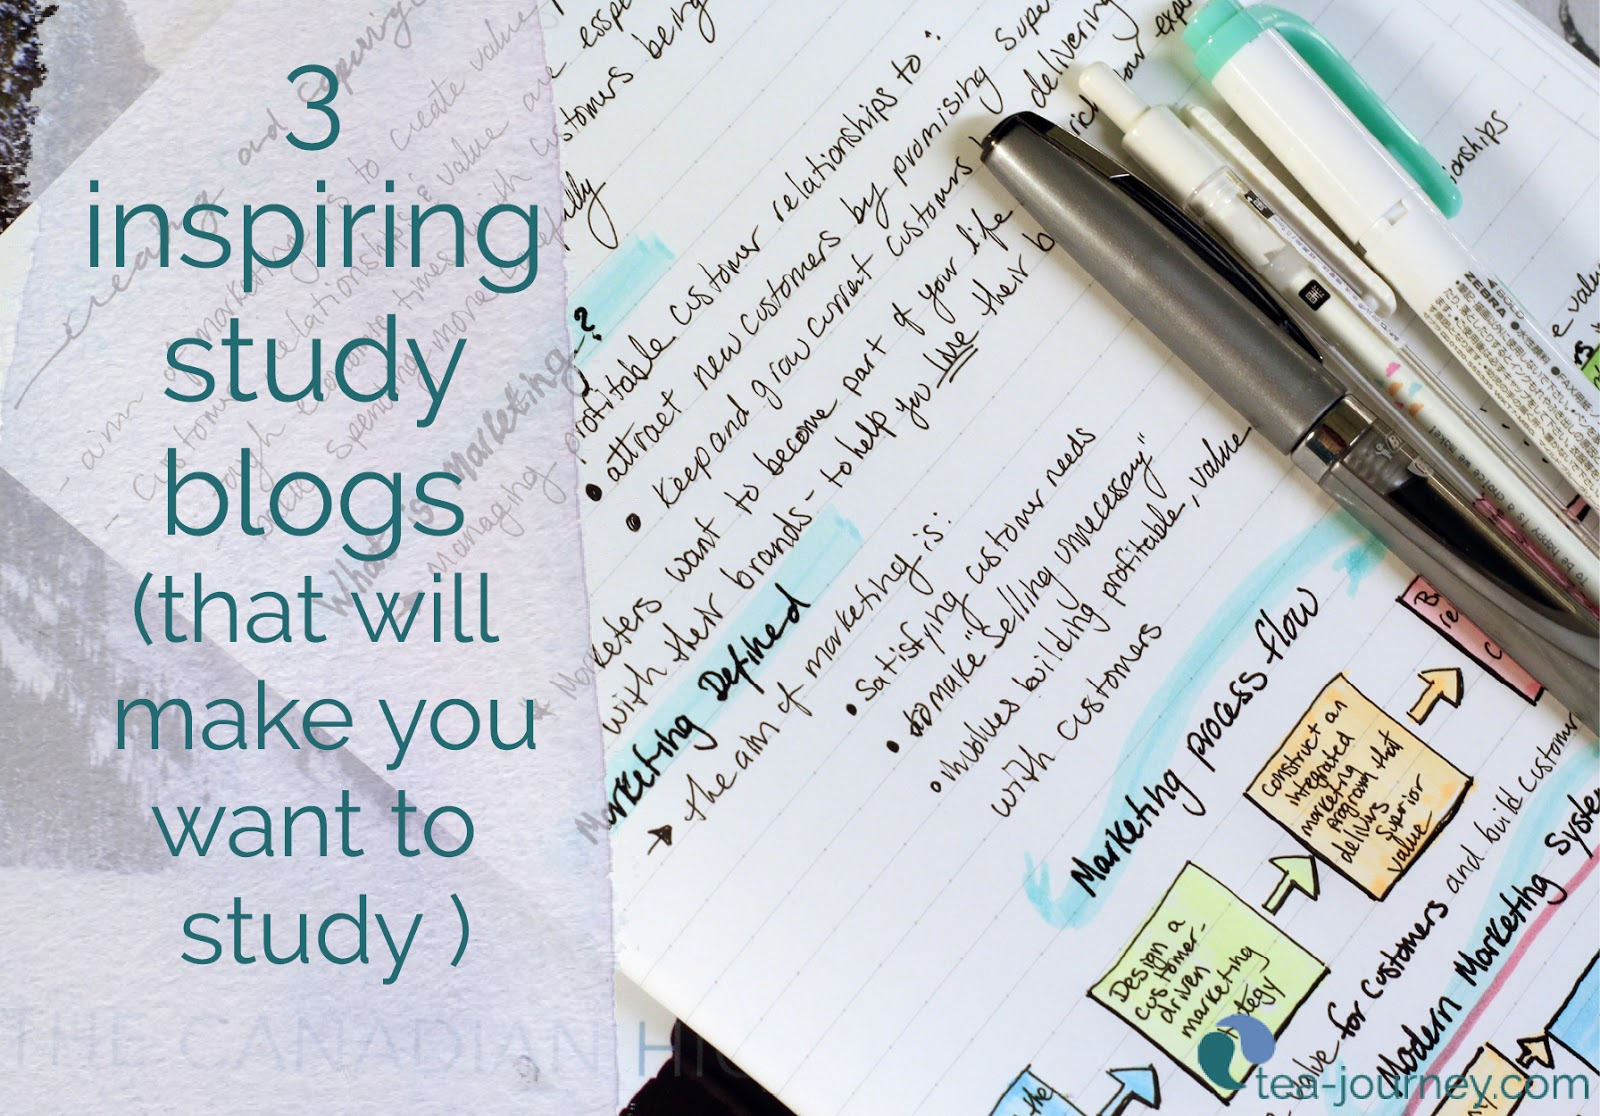 Super charge your study sessions with some inspiring study blogs from tumblr. Check out printables, images and collections (and tips) to get the most out of every study session in style.